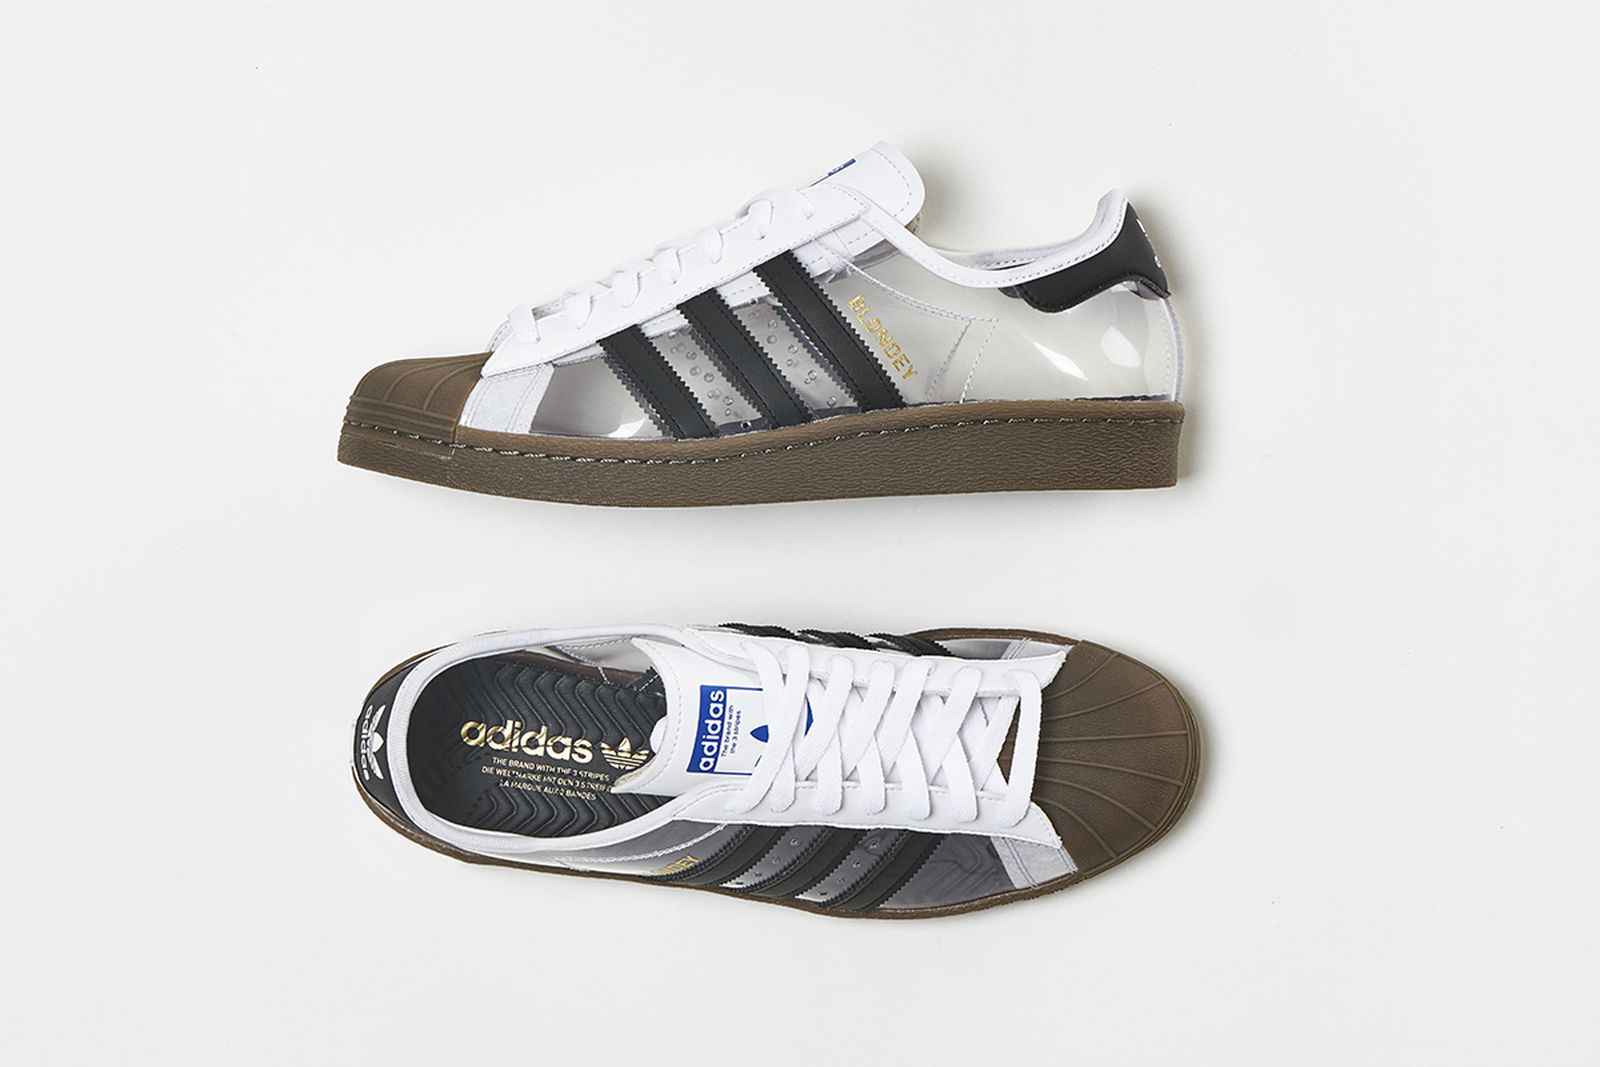 blondey-mccoy-adidas-superstar-80s-clear-release-date-price-1-03